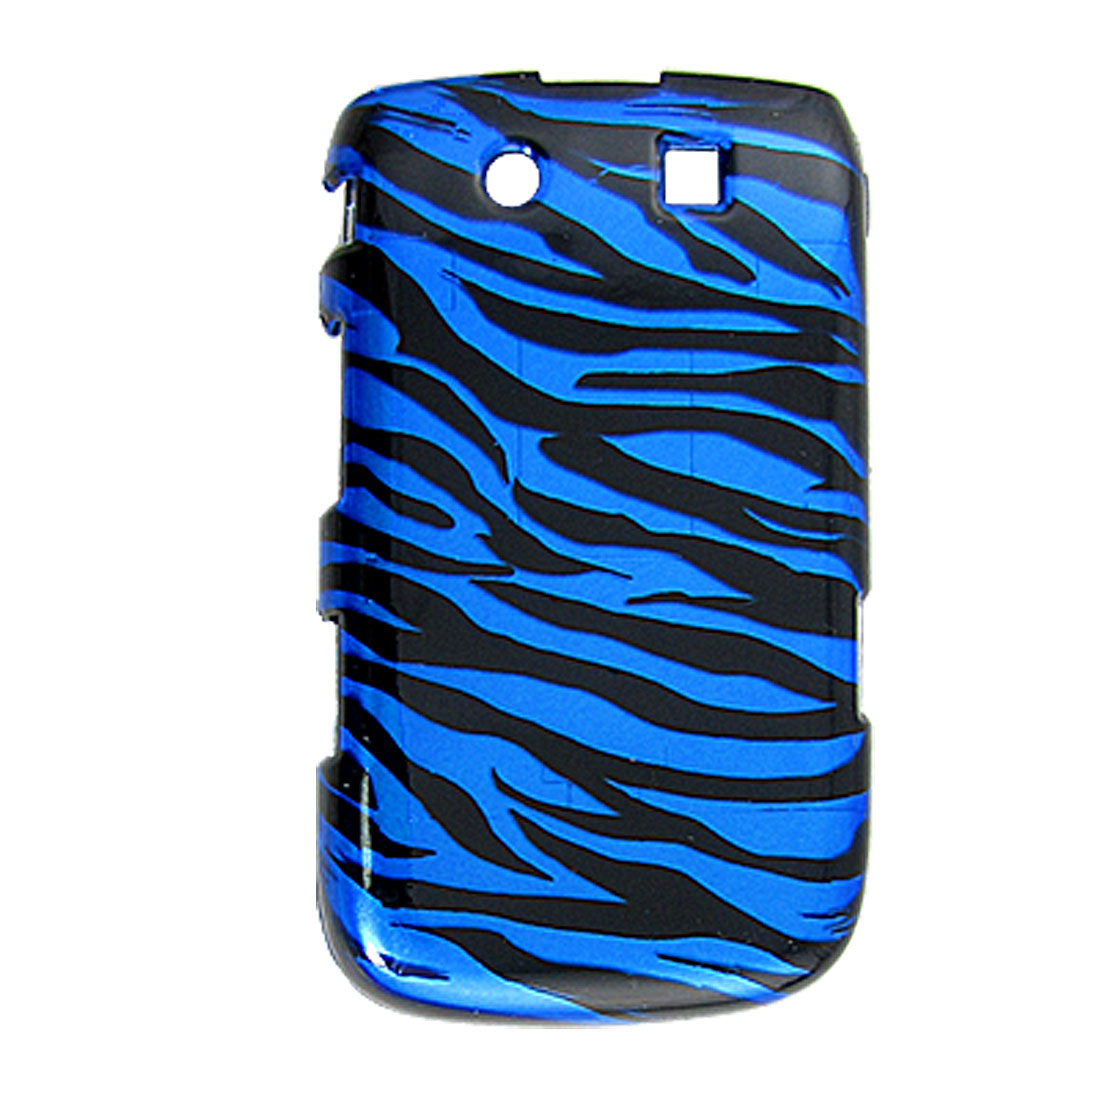 Black Royal Blue Plastic Case Protector for Blackberry Torch 9800